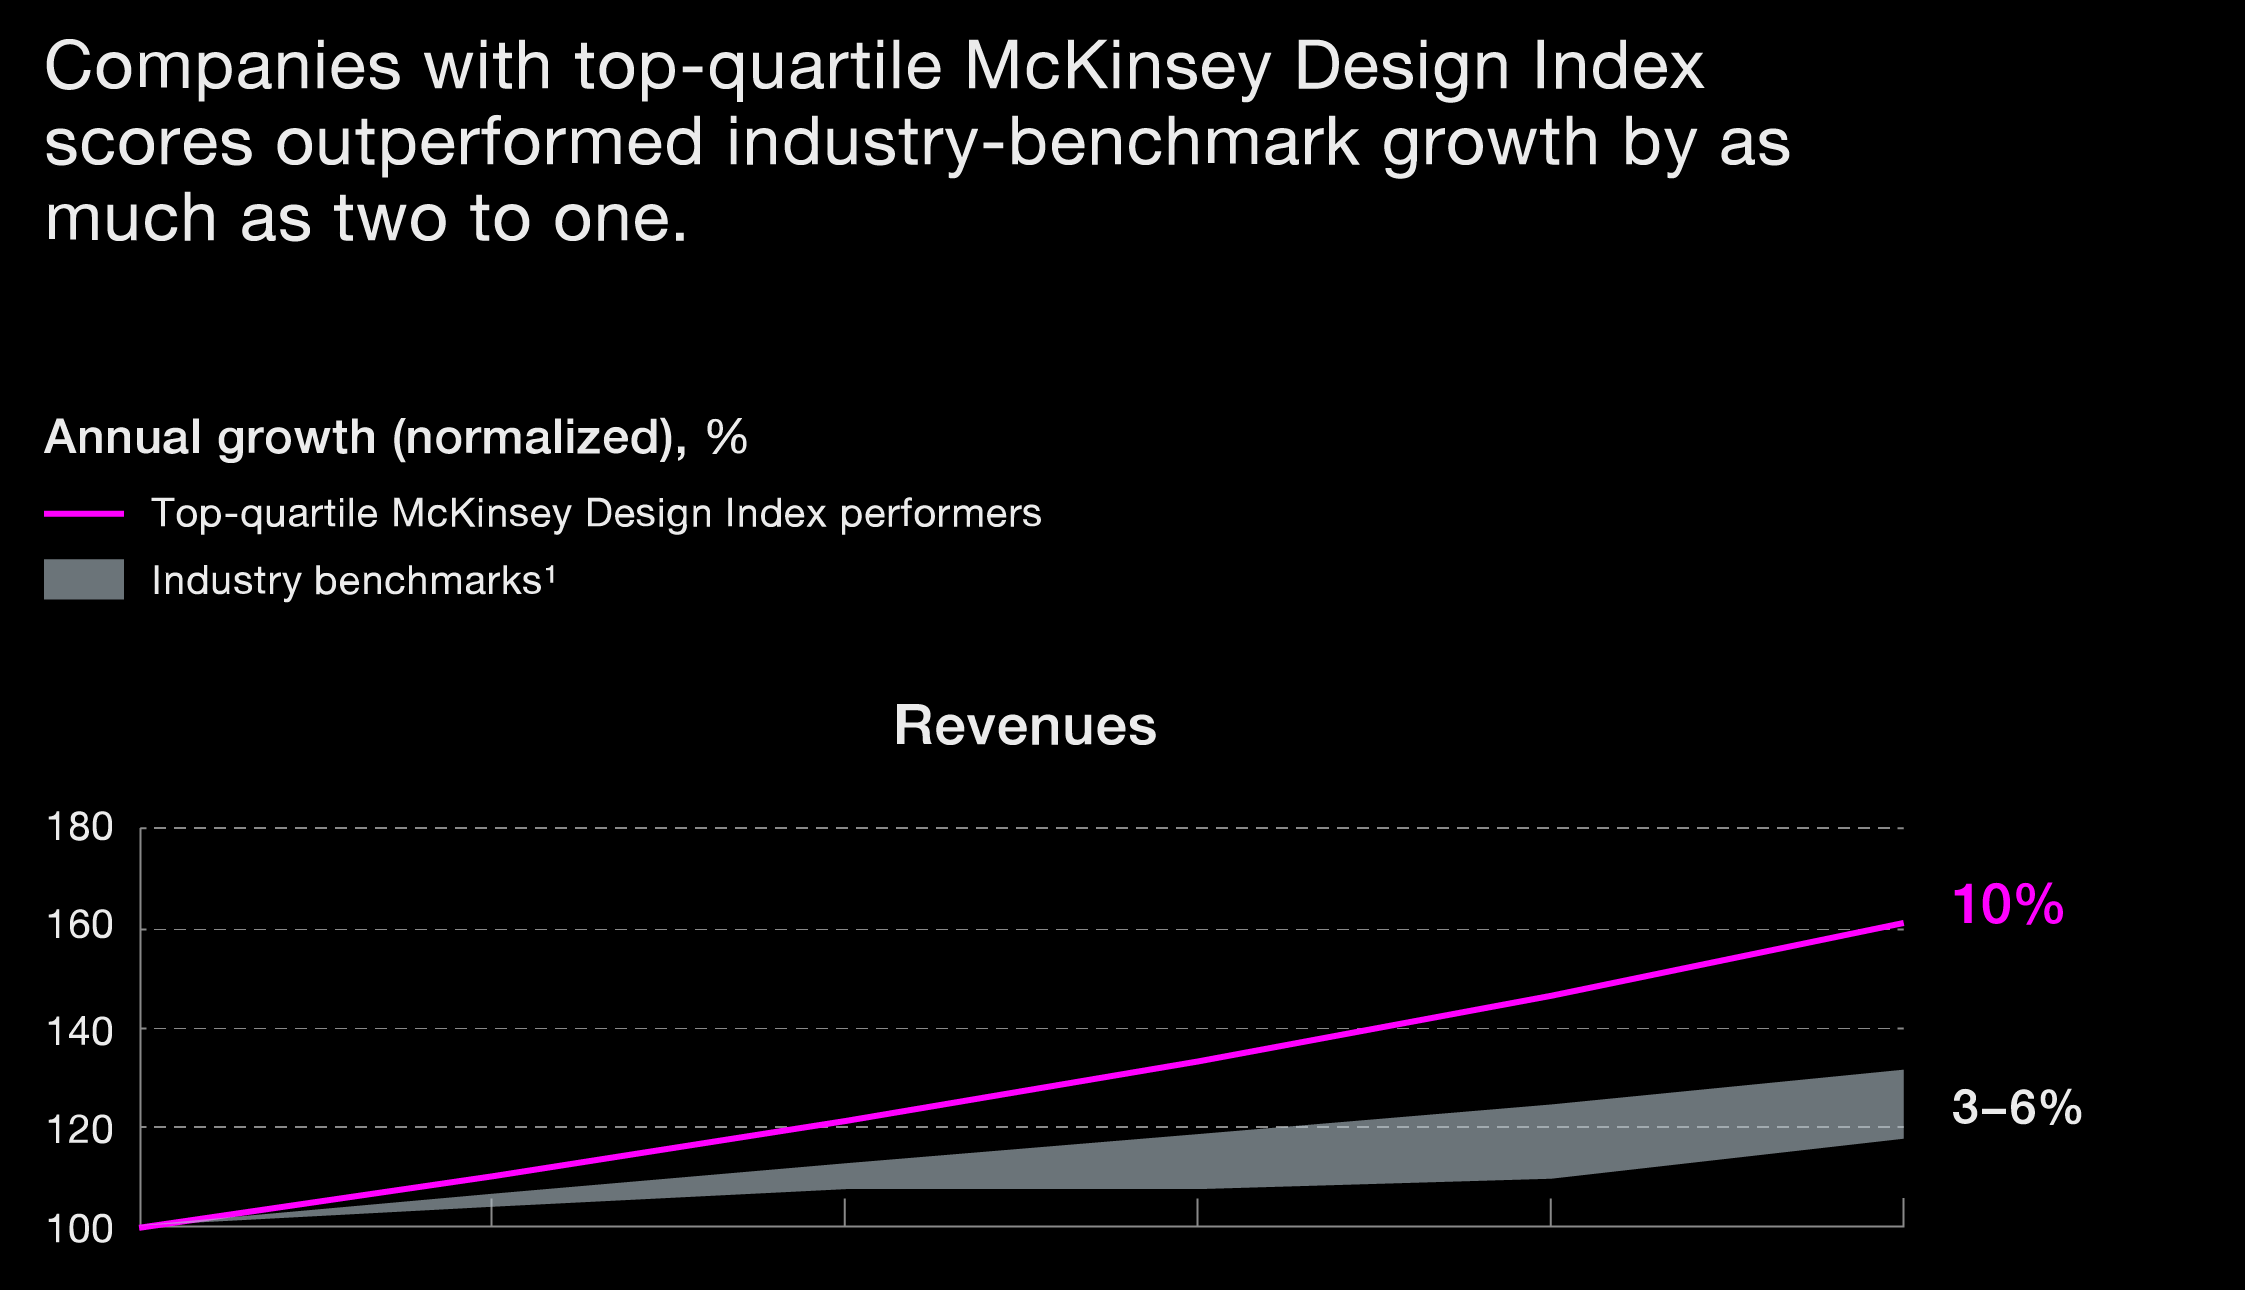 McKinsey's Design Index